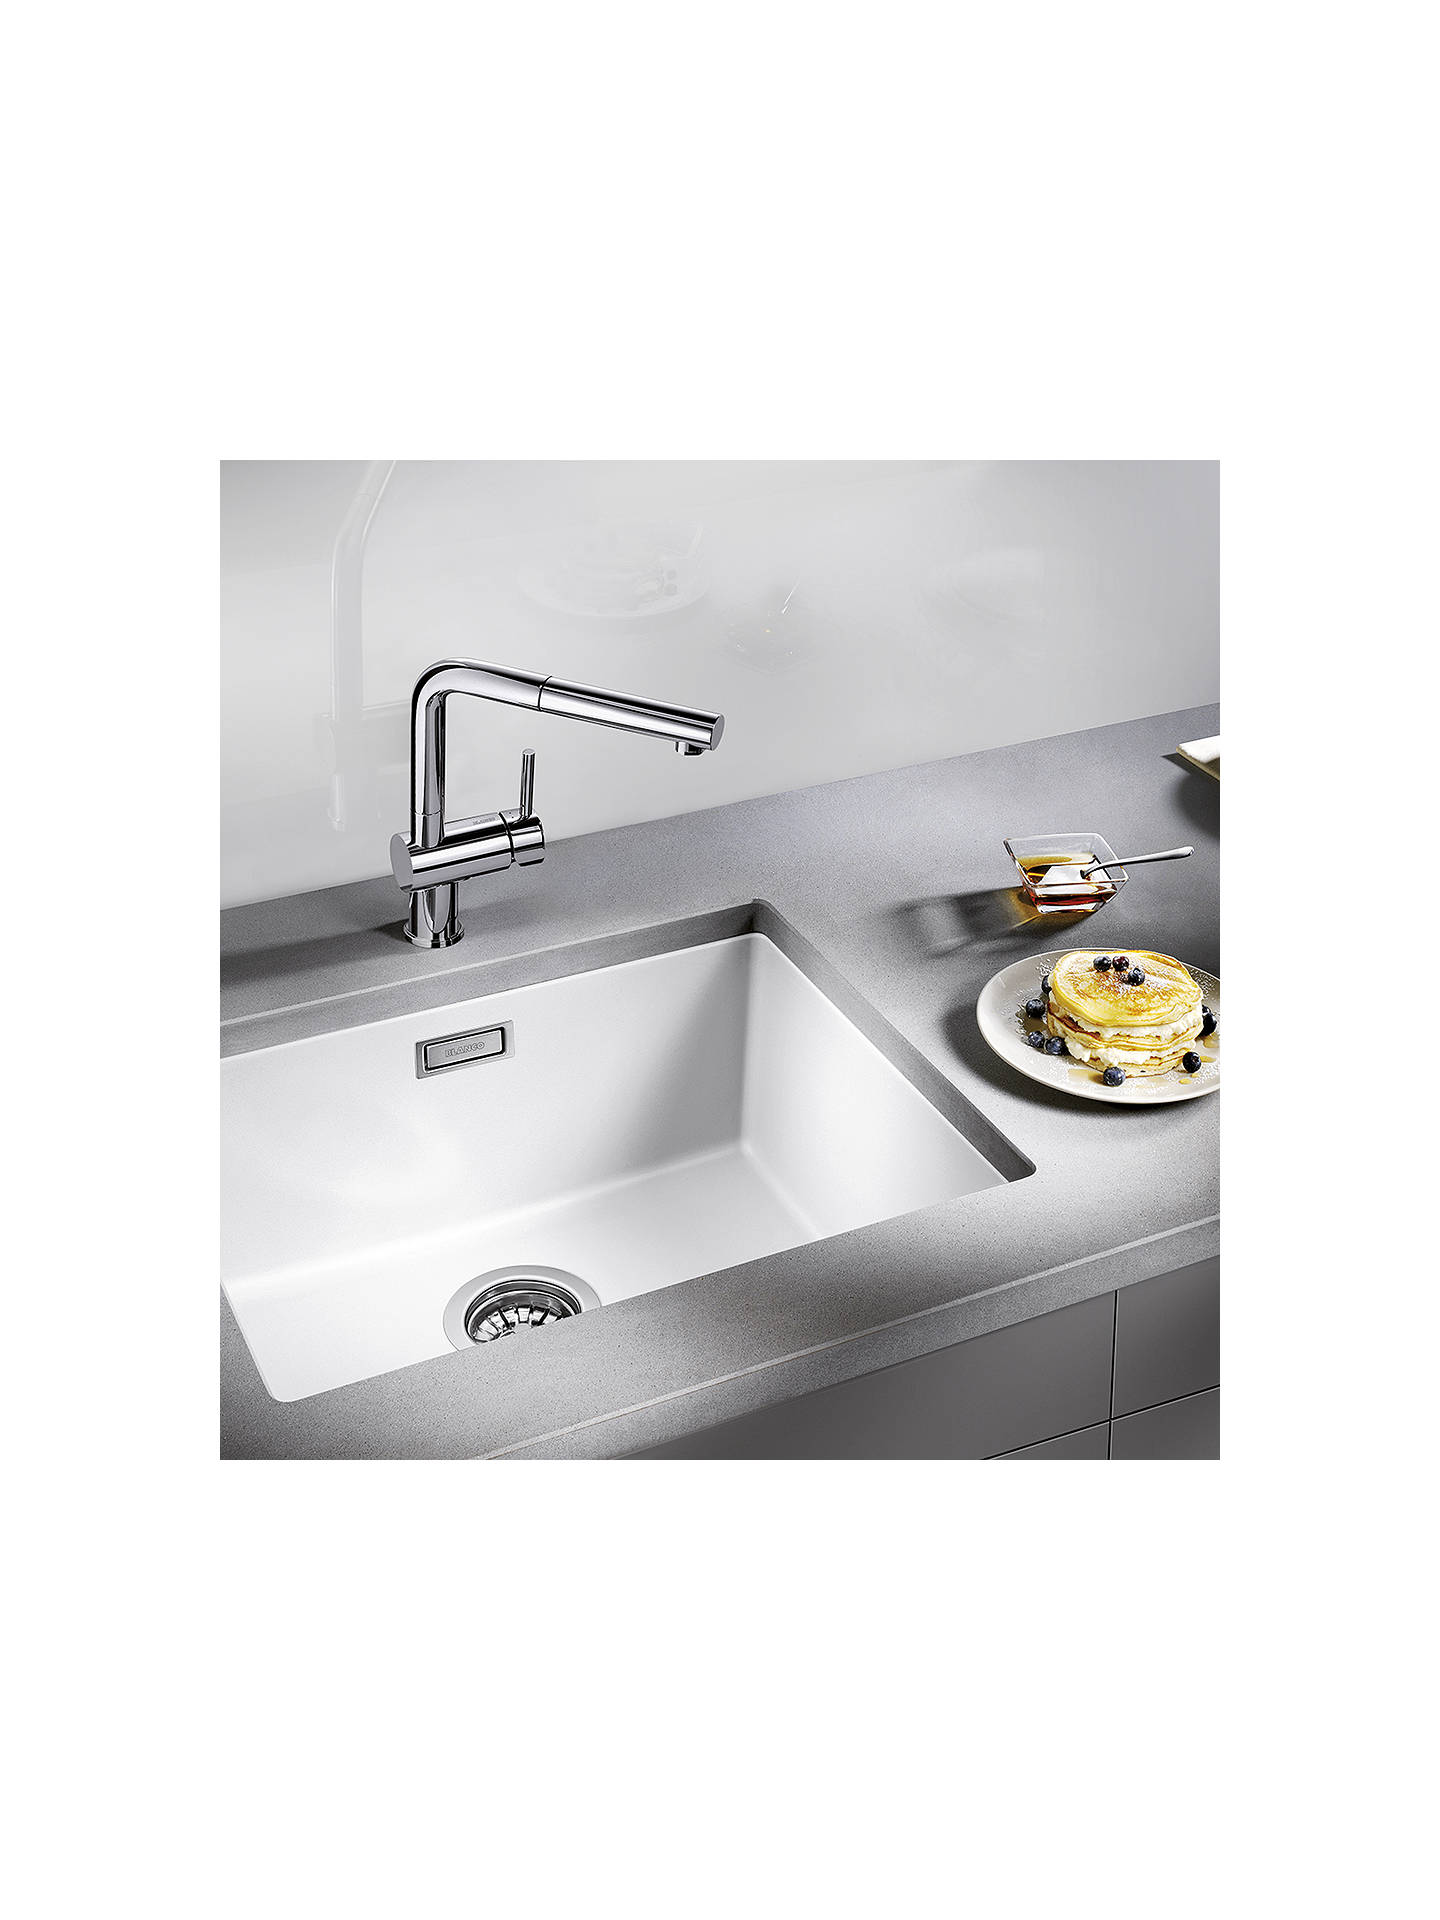 Buy Blanco Subline 500-U Single Bowl Undermounted Composite Granite Kitchen Sink, White Online at johnlewis.com